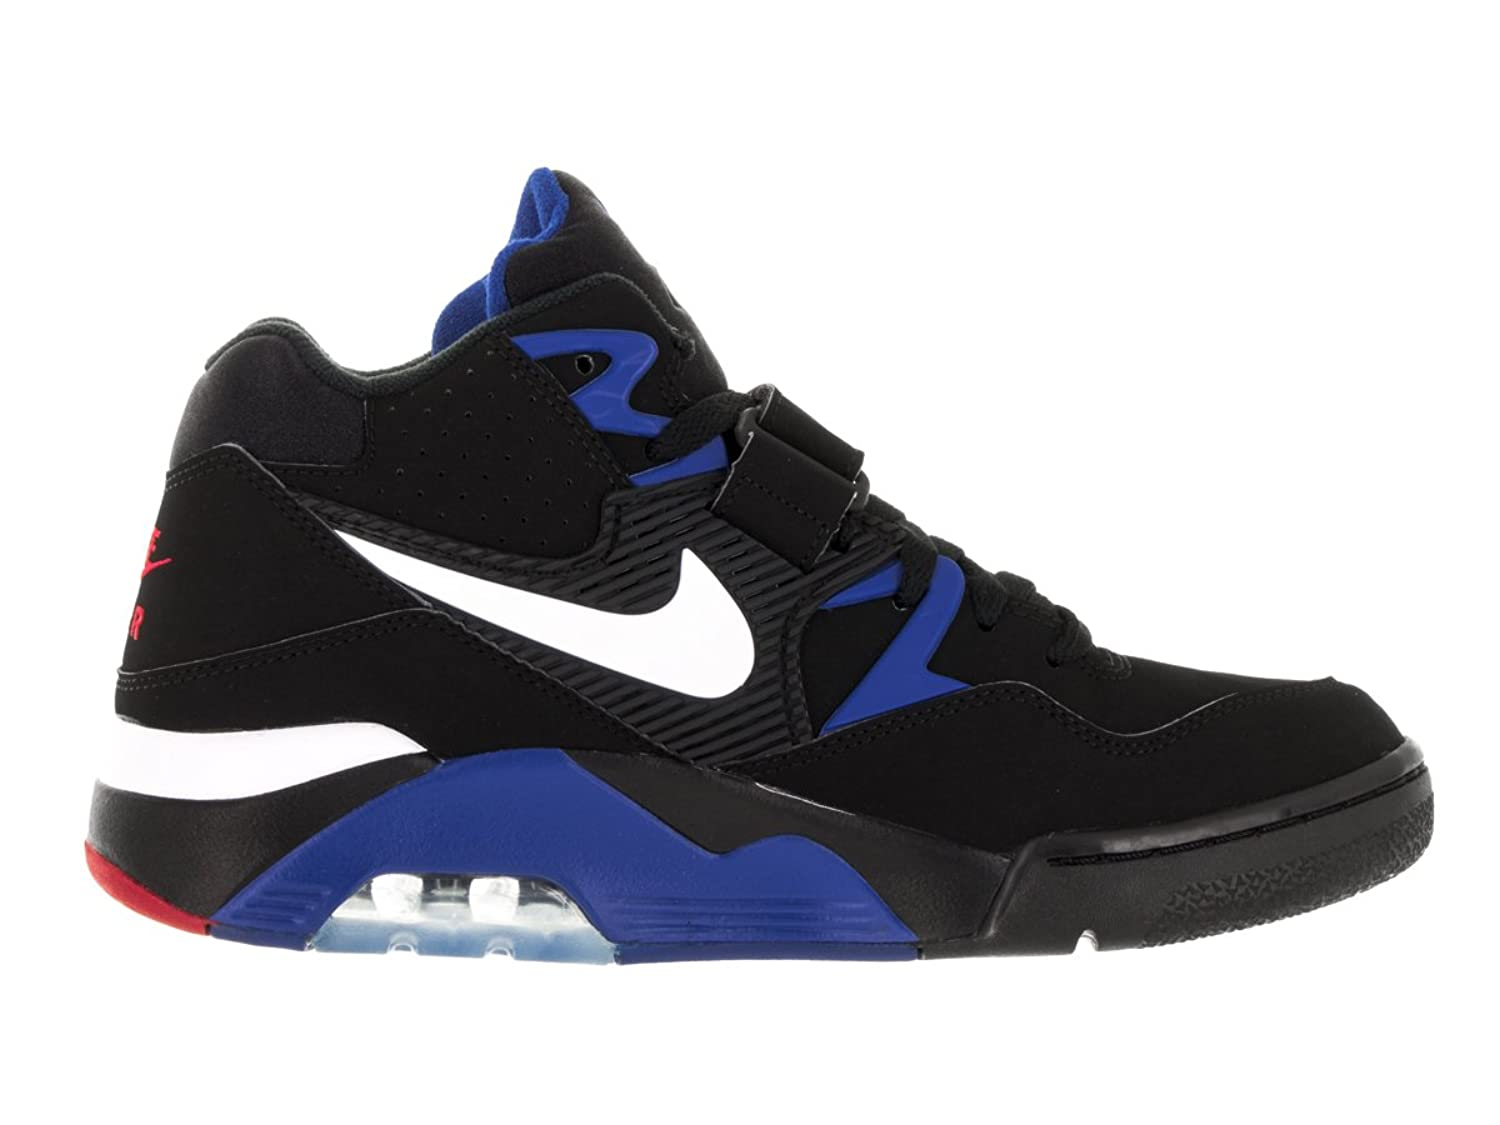 Nike Air Max Basket-ball 180 QsiLx